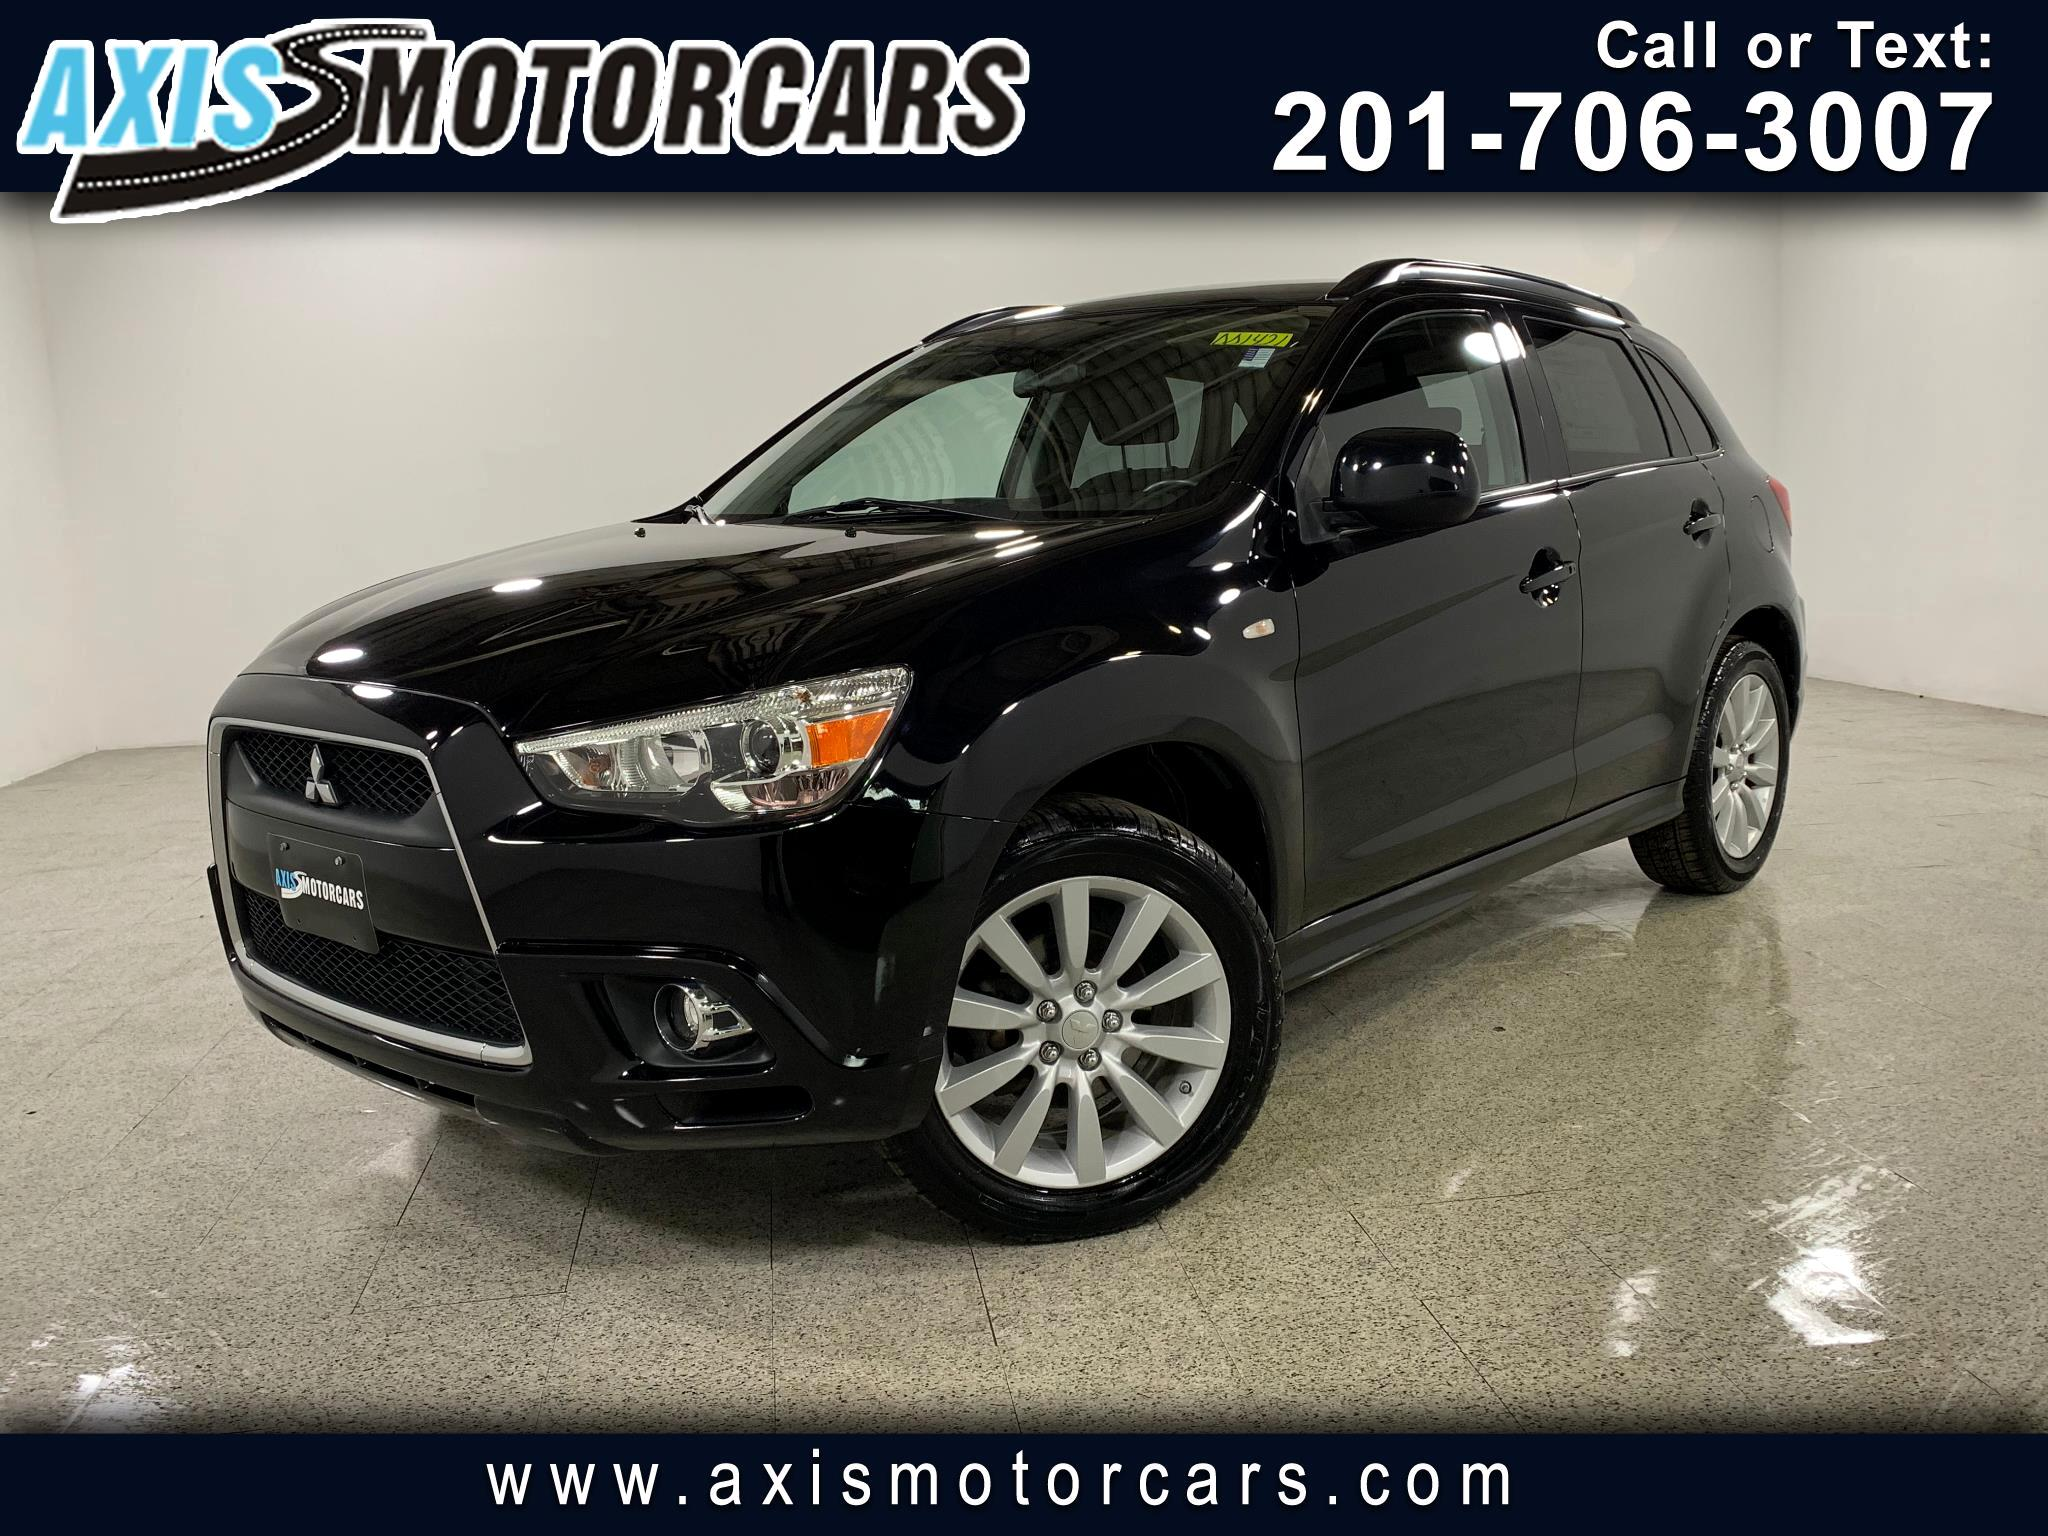 2011 Mitsubishi Outlander Sport w/Panoramic Roof